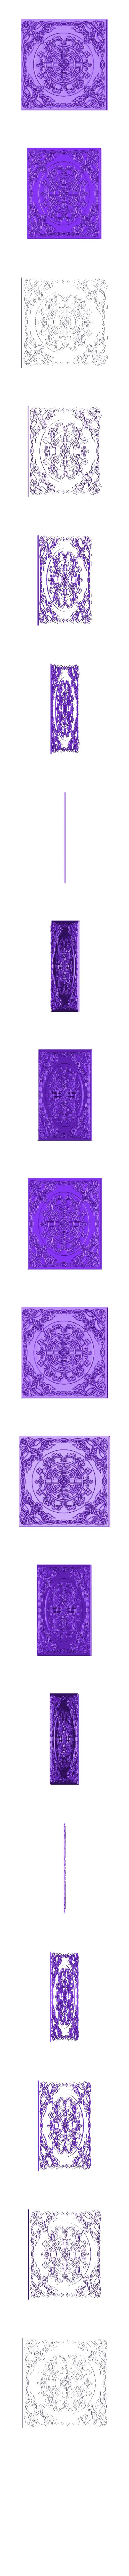 Celtic.stl Download free STL file Celtic Weave • 3D printing template, Account-Closed